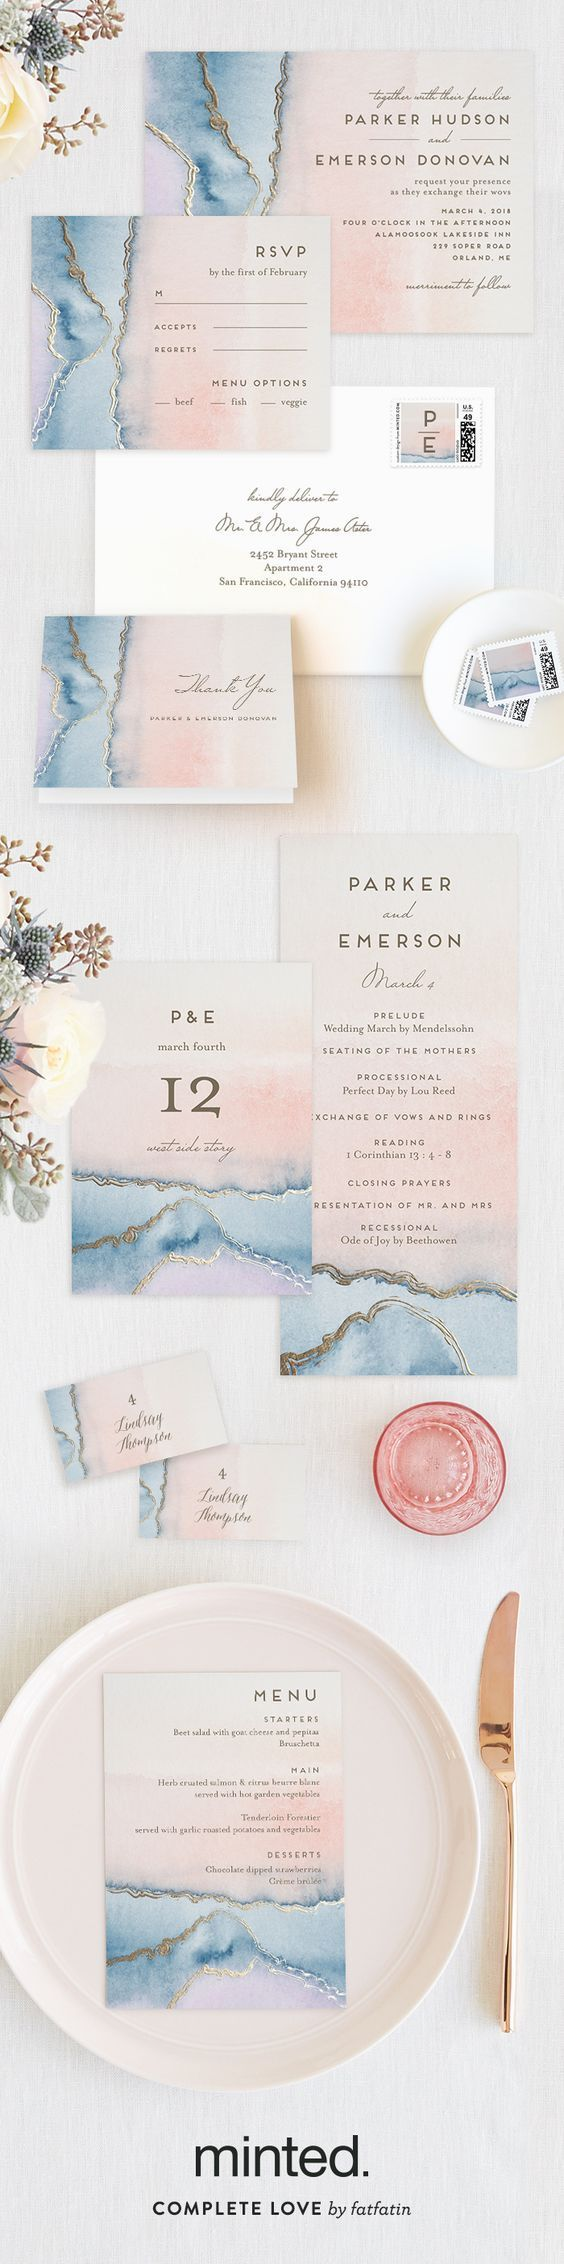 How stunning is the Minted 2016 Foil-Pressed Wedding Collection? Shop unique designs for your wedding invitations in unique styles from our community of artists. Simple Agate, geode crystal inspired wedding invitation, by Minted artist Petra Kern.